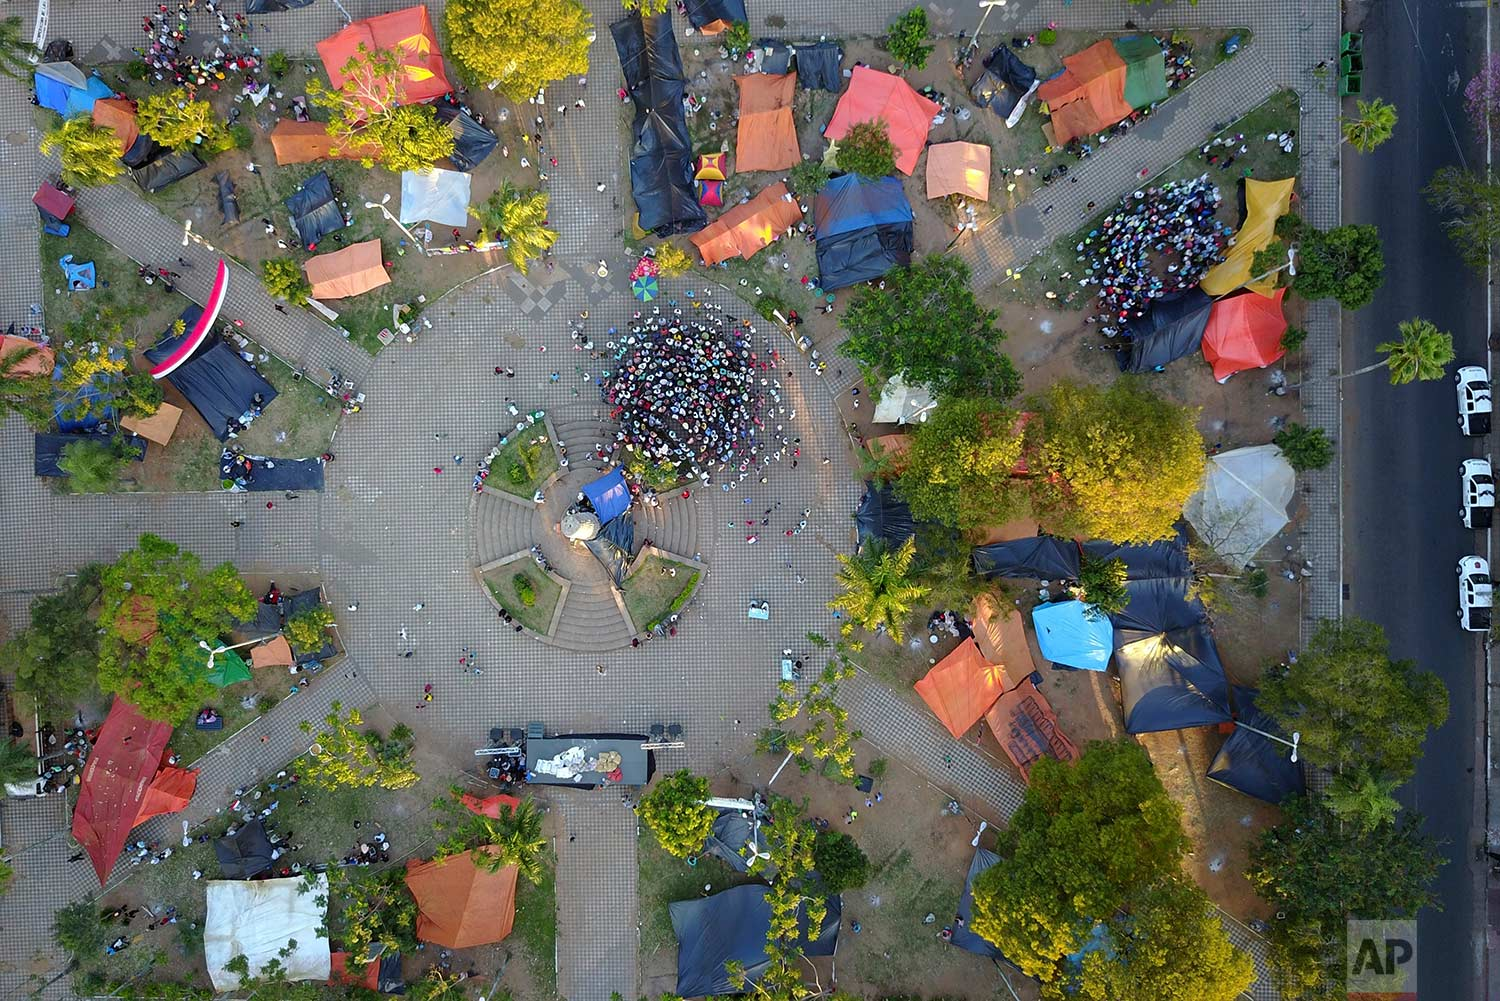 """Farmers from northern Paraguay participate in a meeting at their camp at the """"Plaza de Armas"""" in downtown Asuncion, Paraguay, Wednesday, July 12, 2017. (AP Photo/Jorge Saenz)"""